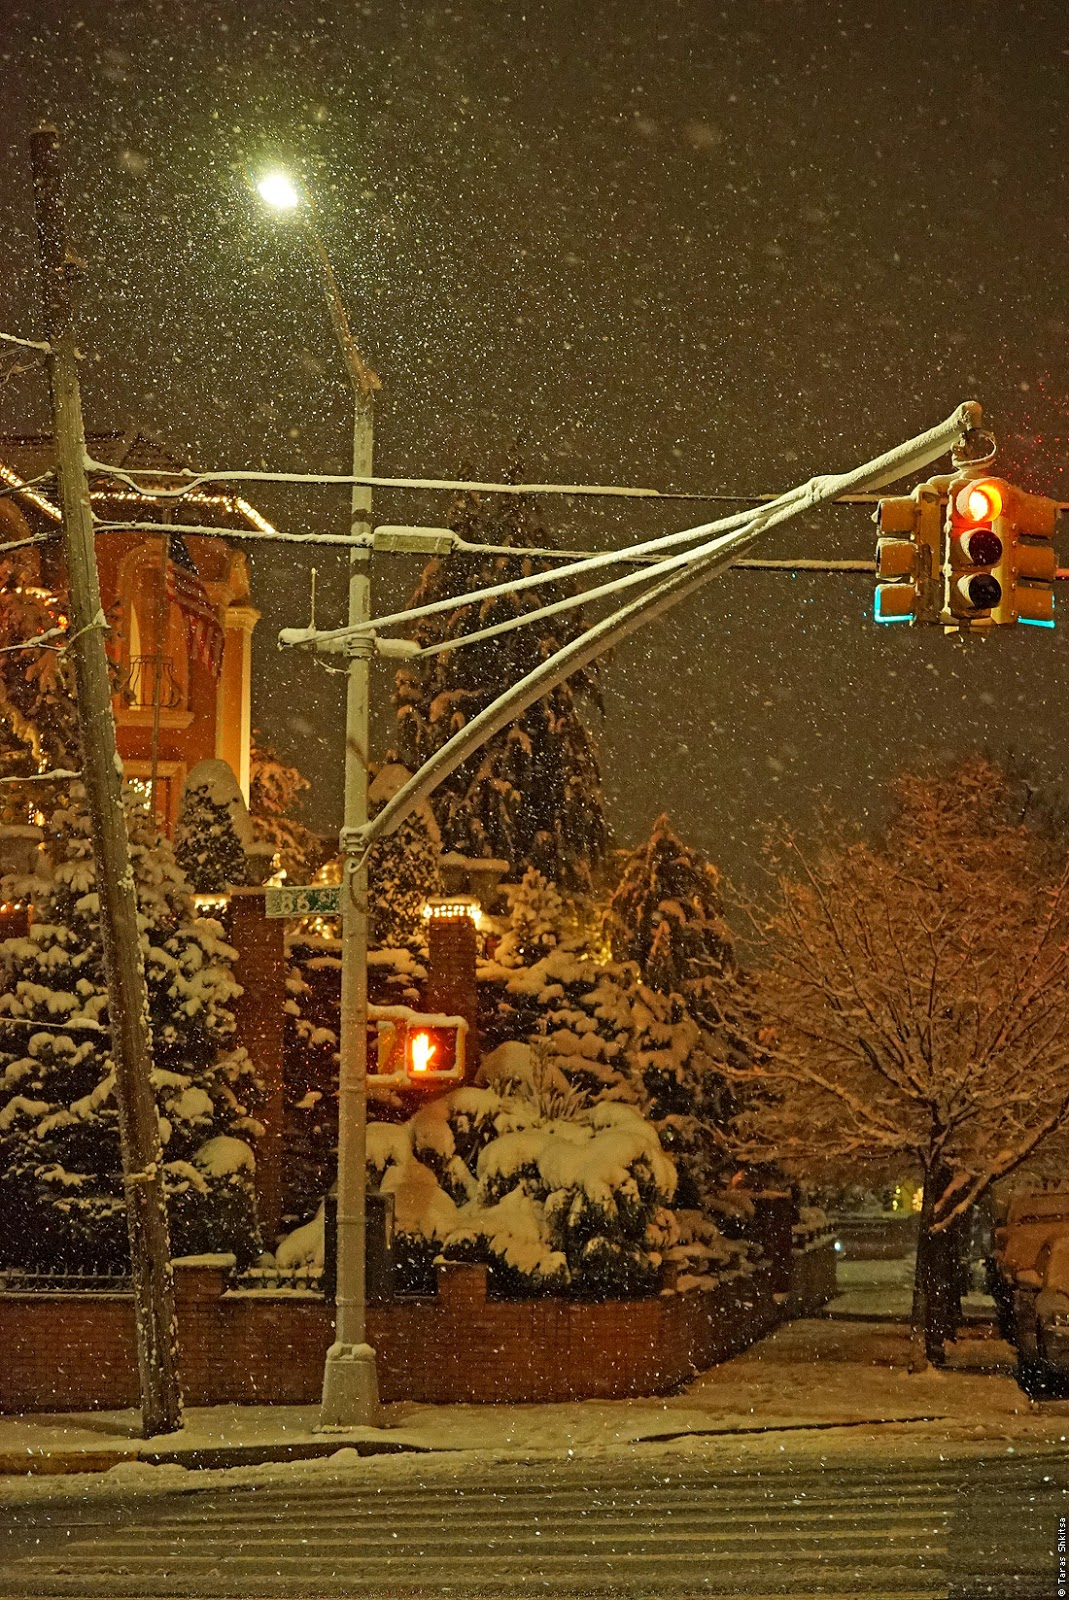 Bay Ridge. Brooklyn. Evening, winter